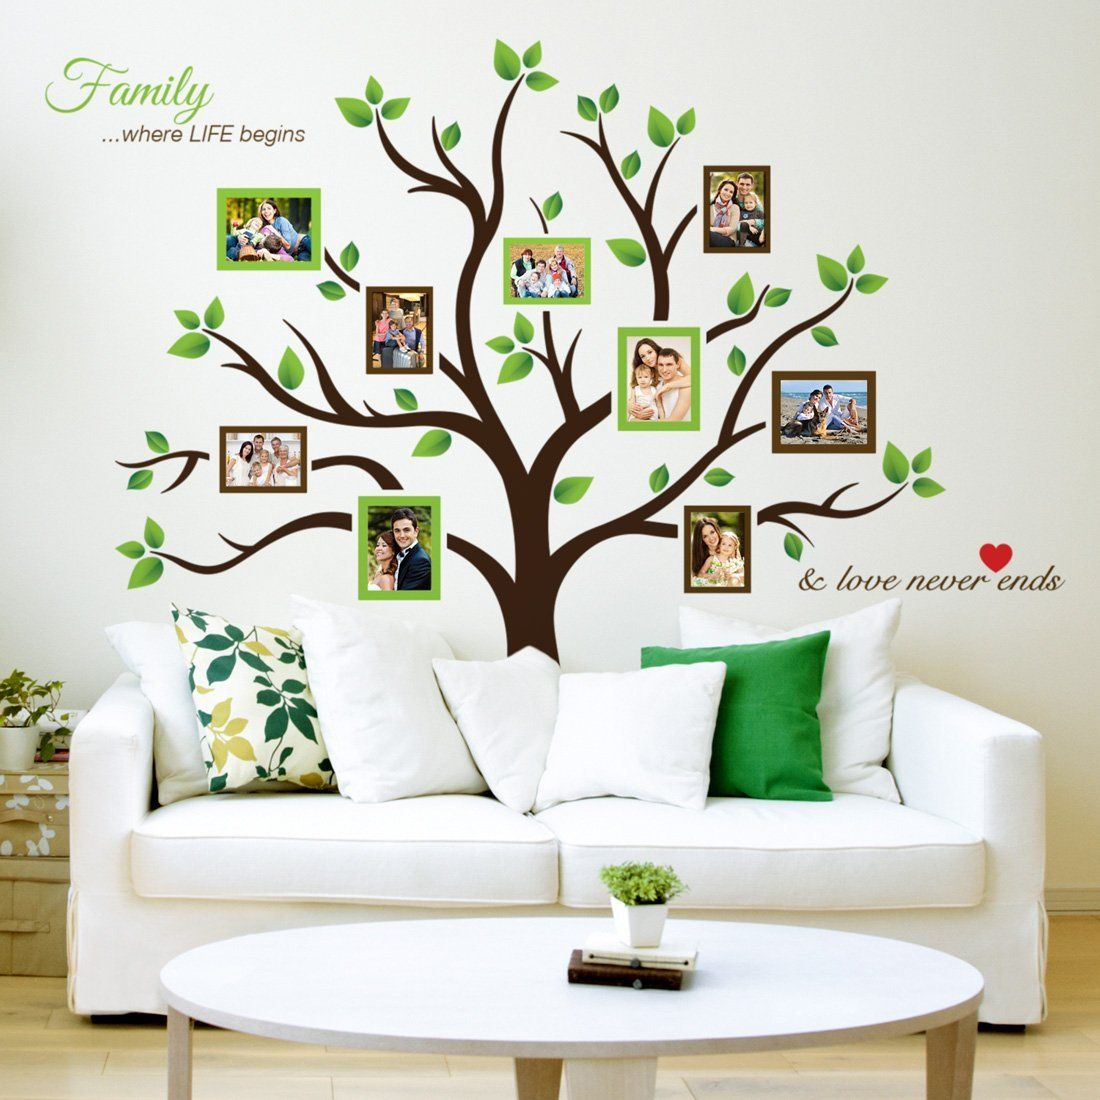 Timber Artbox Large Family Tree Photo Frames Wall Decal - The ...